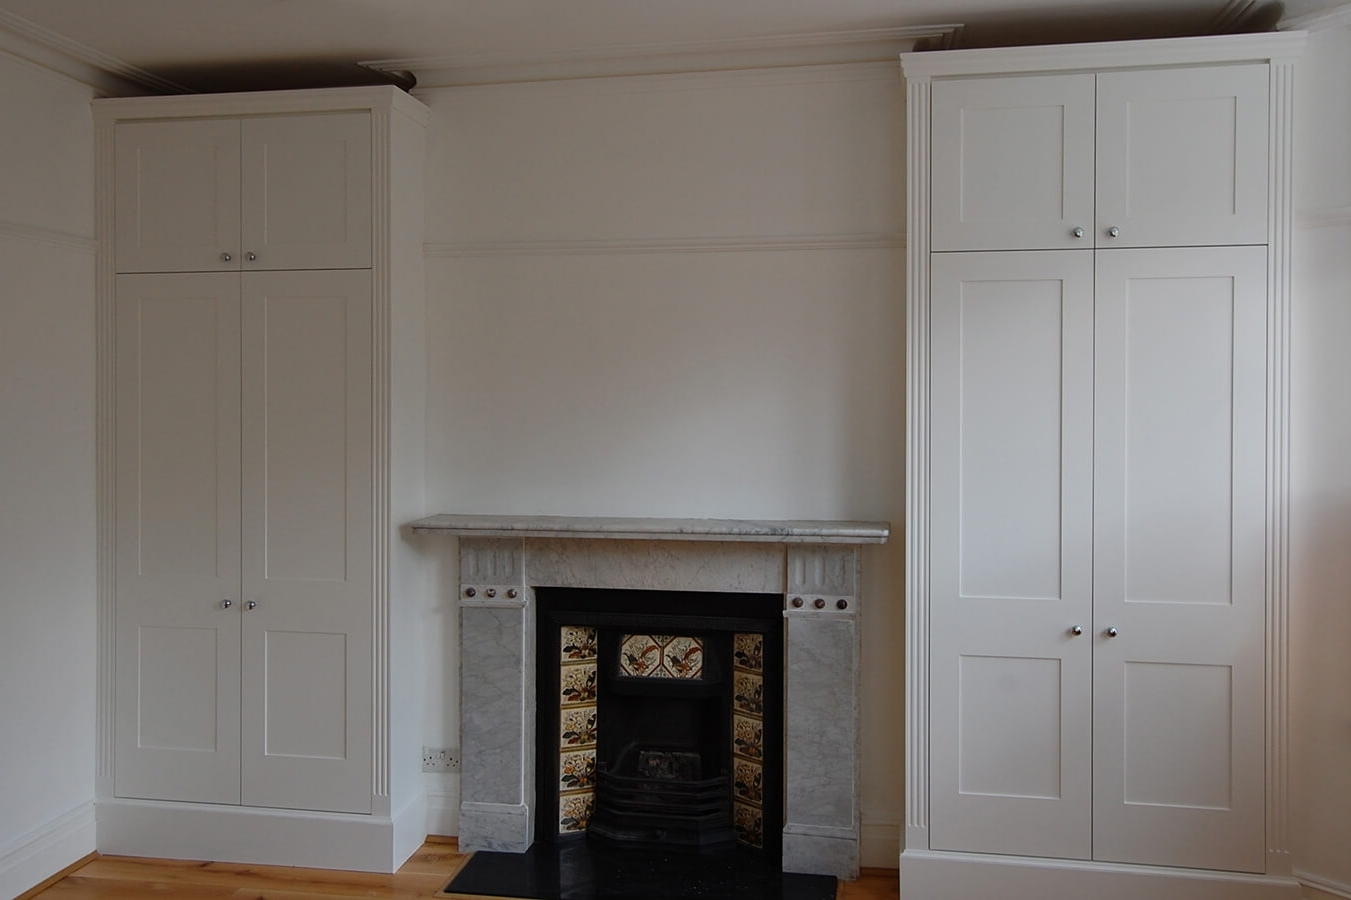 2018 Alcove Wardrobes Designs For London Built In Wardrobes Alcoves – Google Search (View 2 of 15)